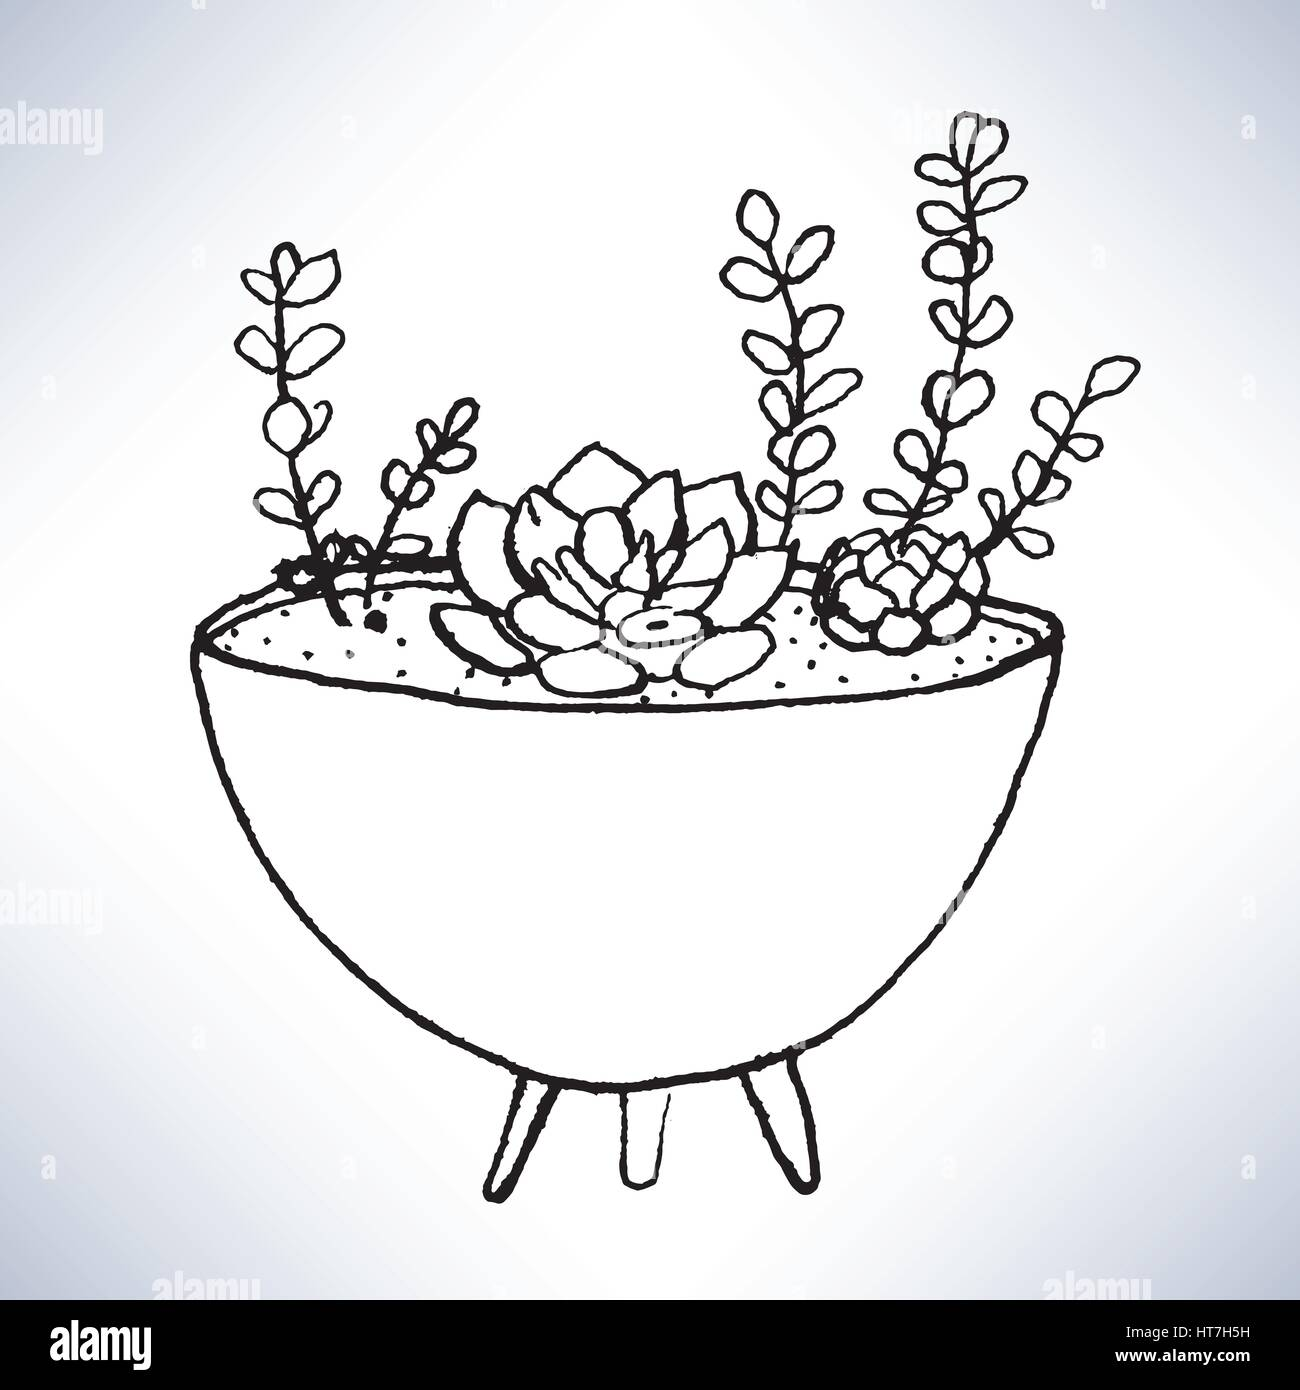 Isolated hand drawn lineart potted plants - Stock Image